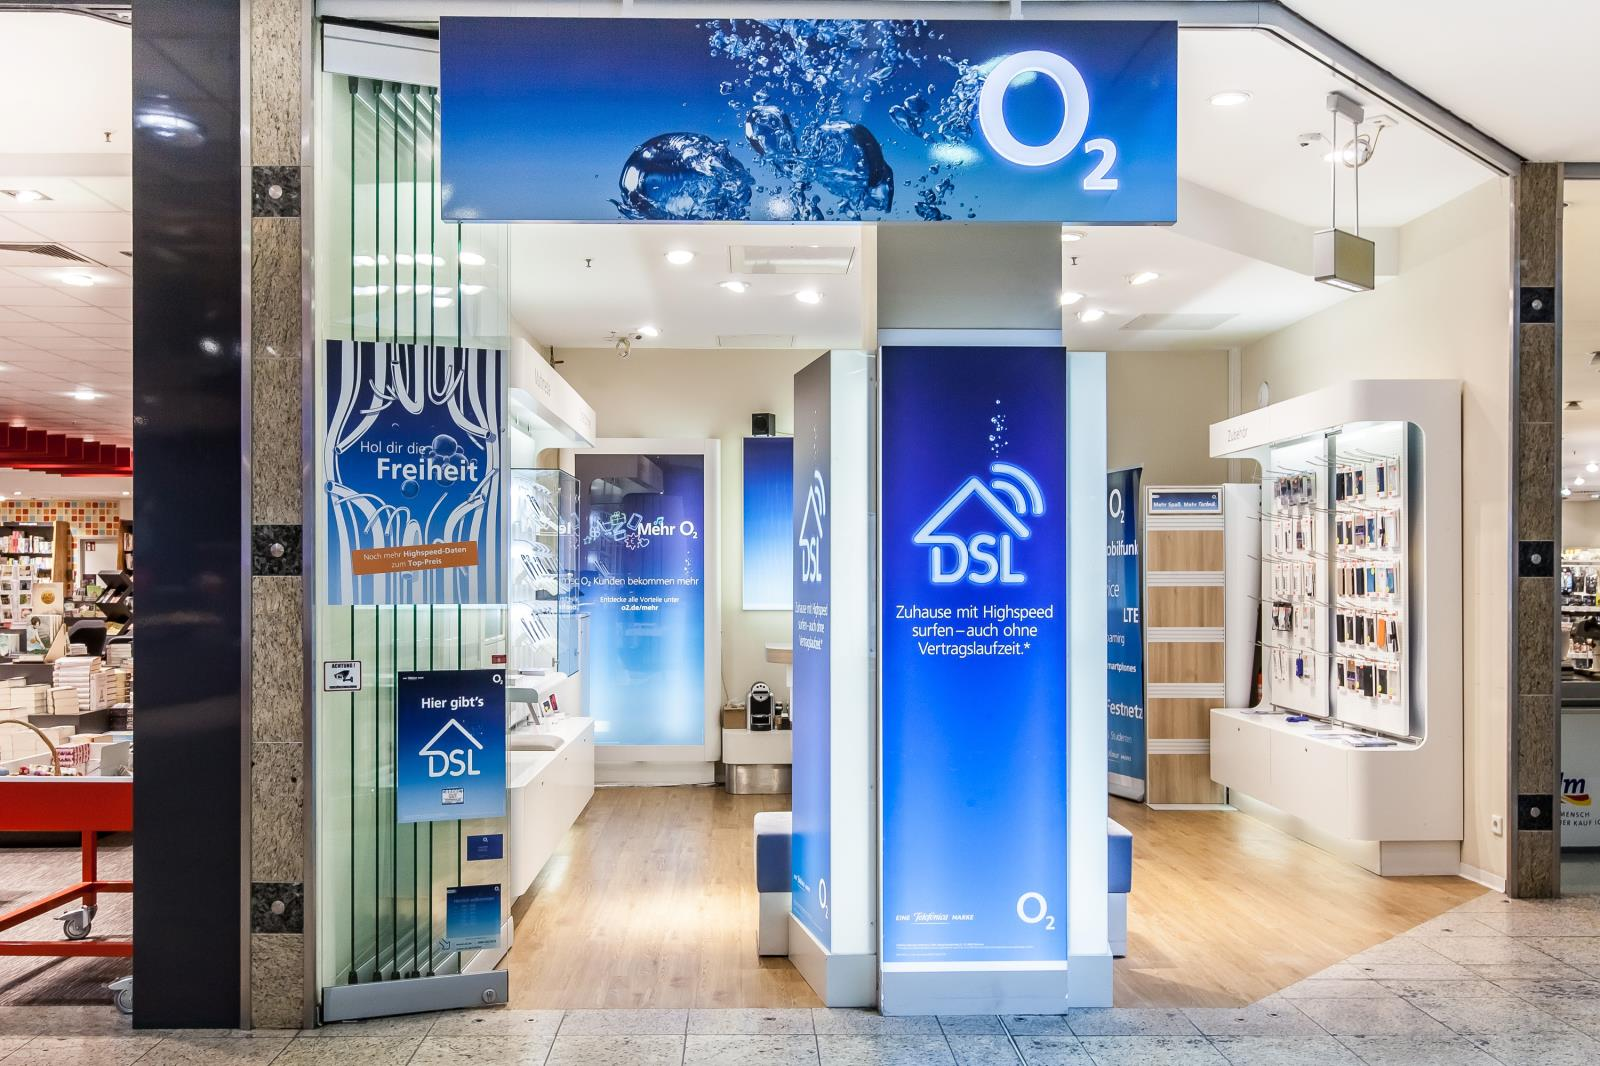 o2 Shop, Borsigallee 26 in Frankfurt am Main